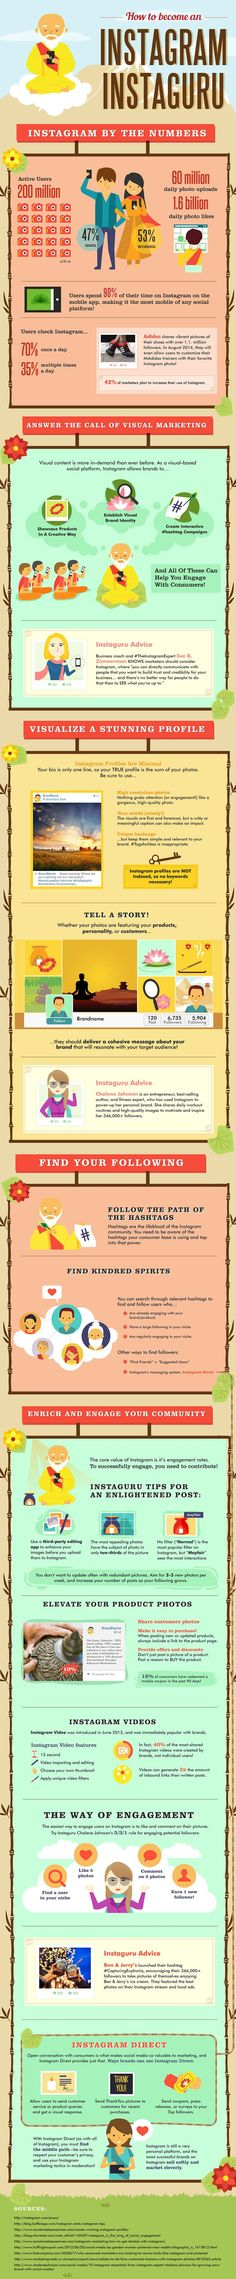 Want to become an Instagram guru? If you're using Instagram for business, improving your presence there should be a priority! Help IGers find your business with the tips on this infographic.